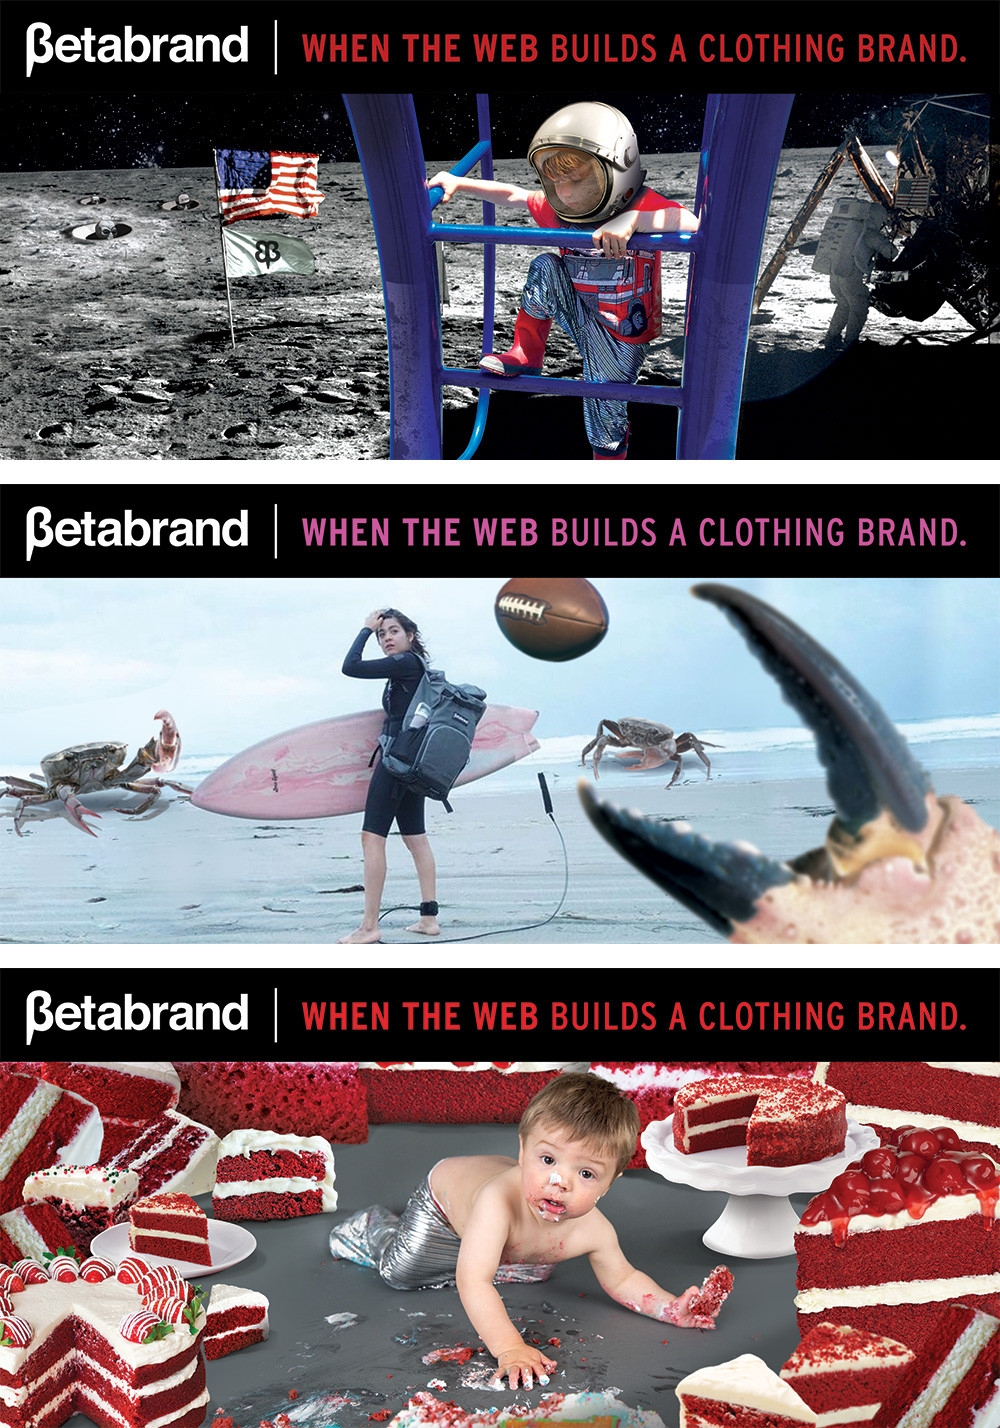 Betabrand Billboards 2